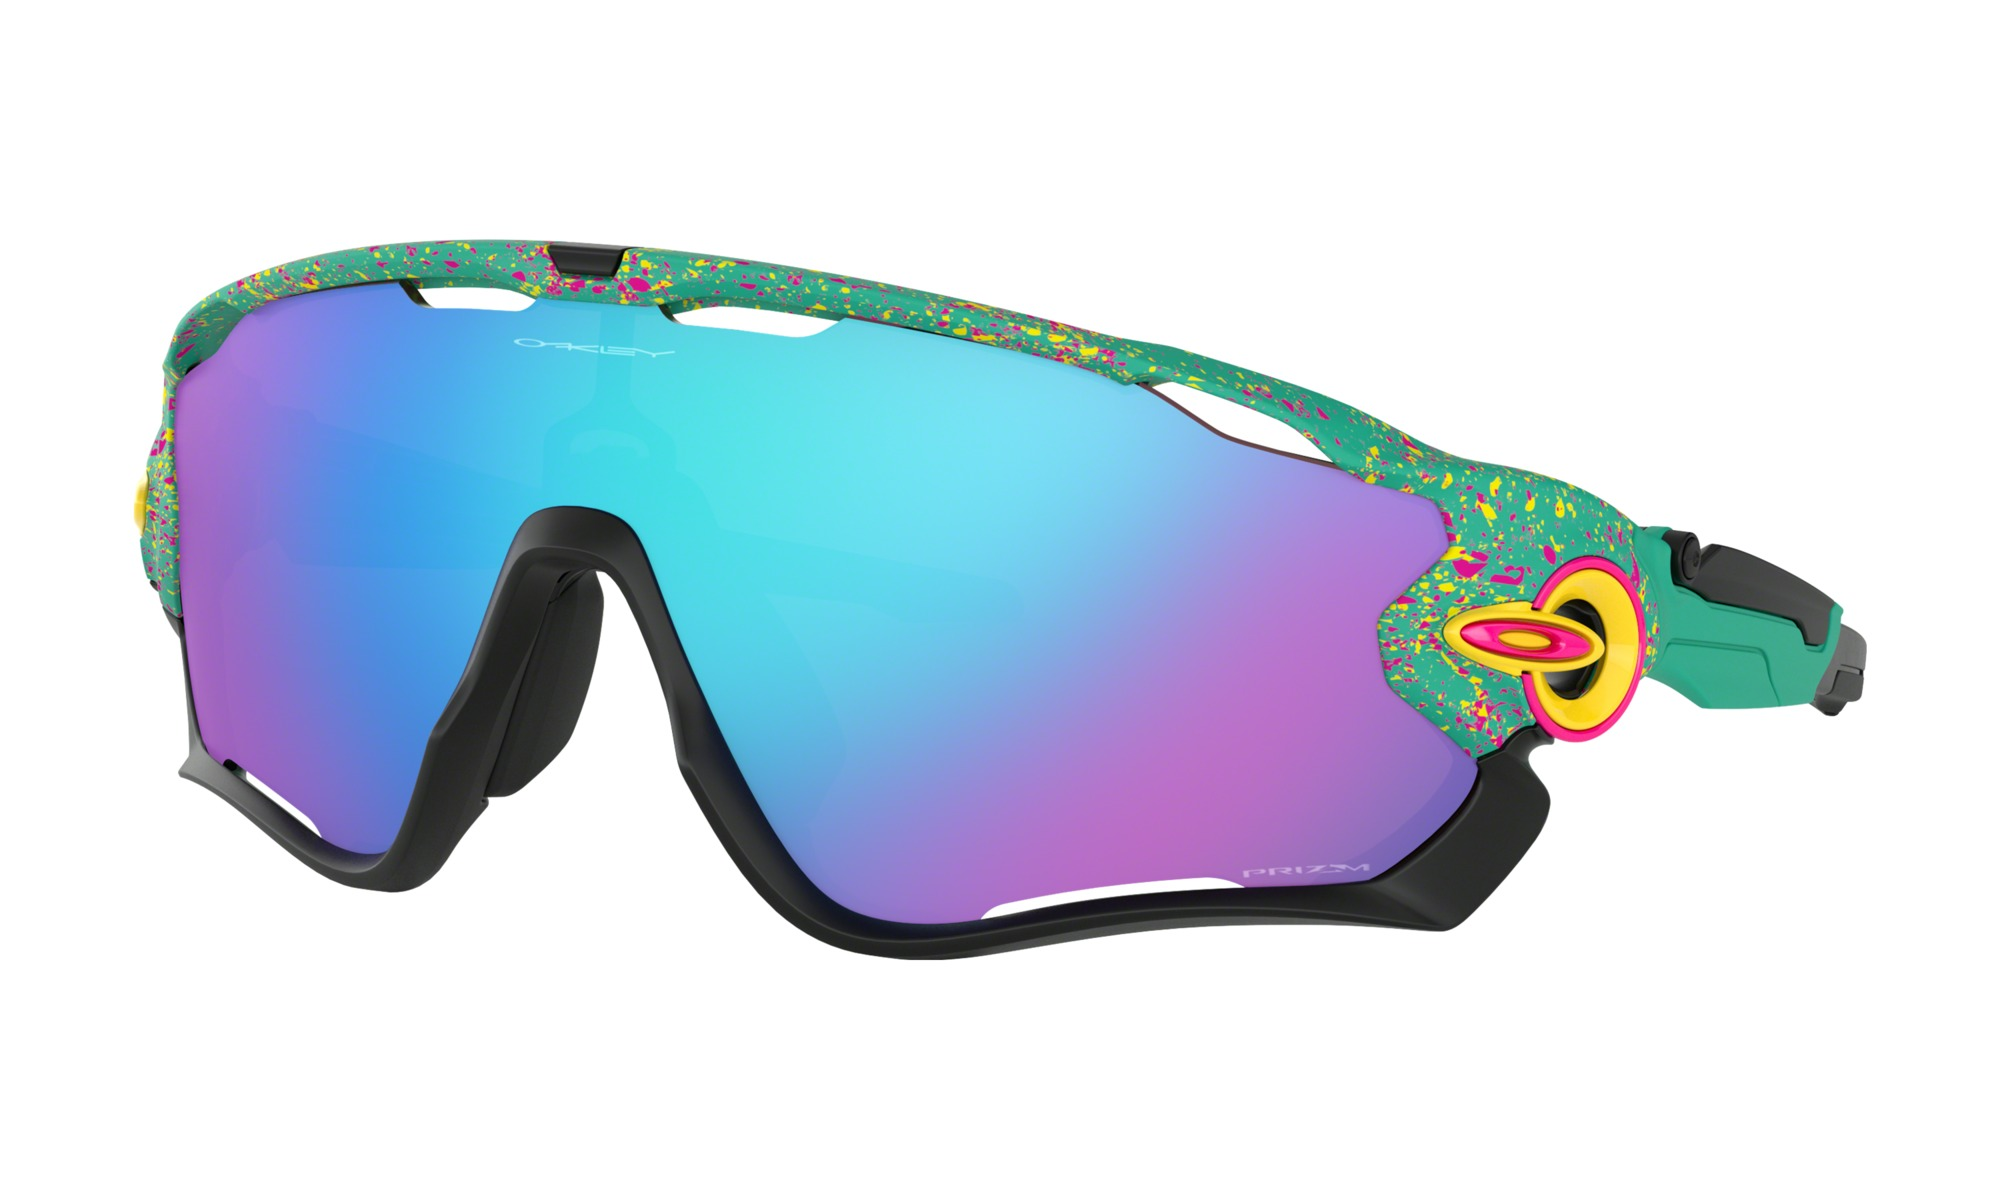 Fake Oakley Jawbreaker Splatterfade Collection Celeste Frame Prizm Sapphire Lens